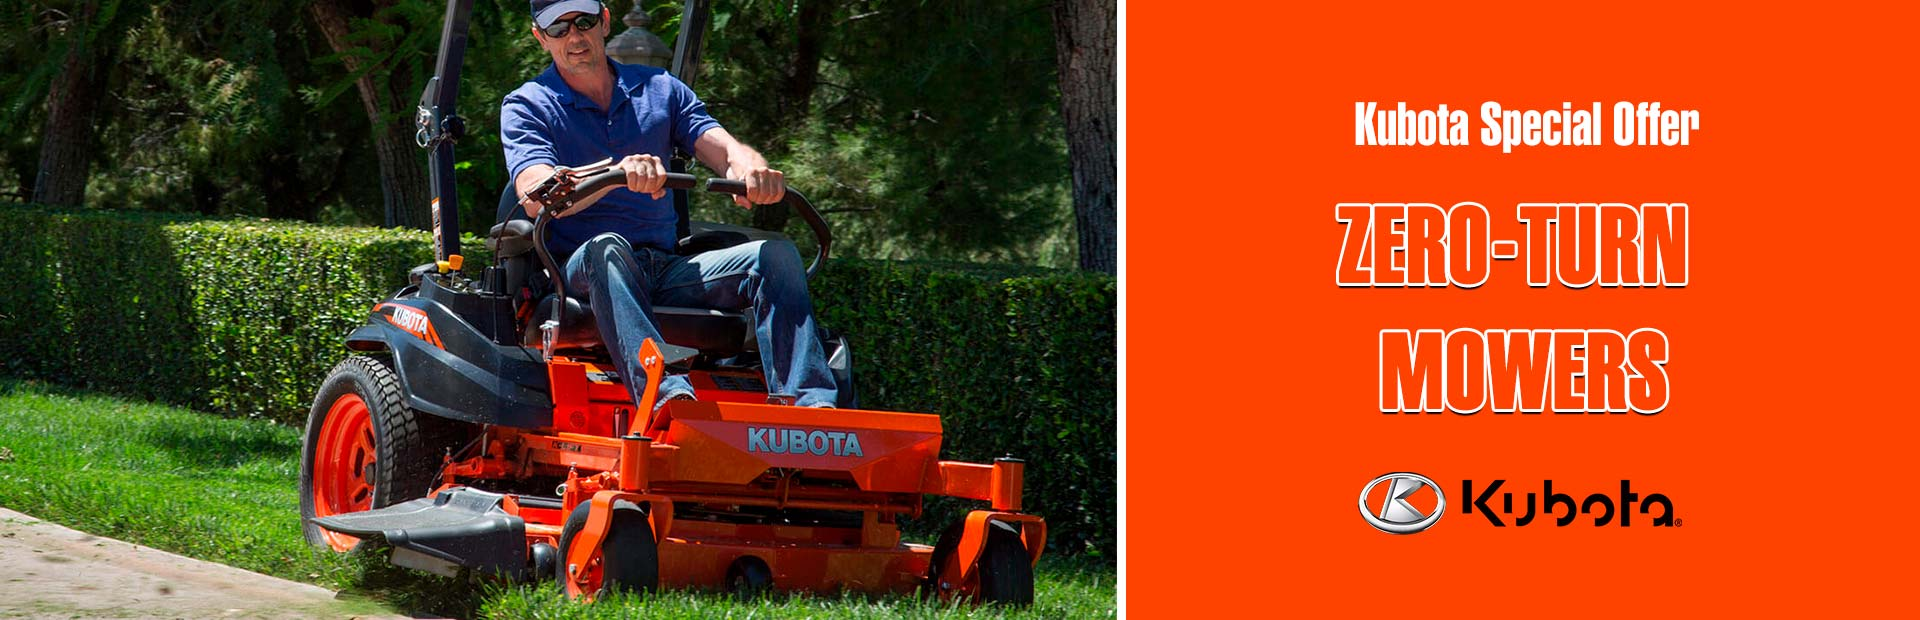 Kubota: Kubota Special Offer - Zero-Turn Mowers